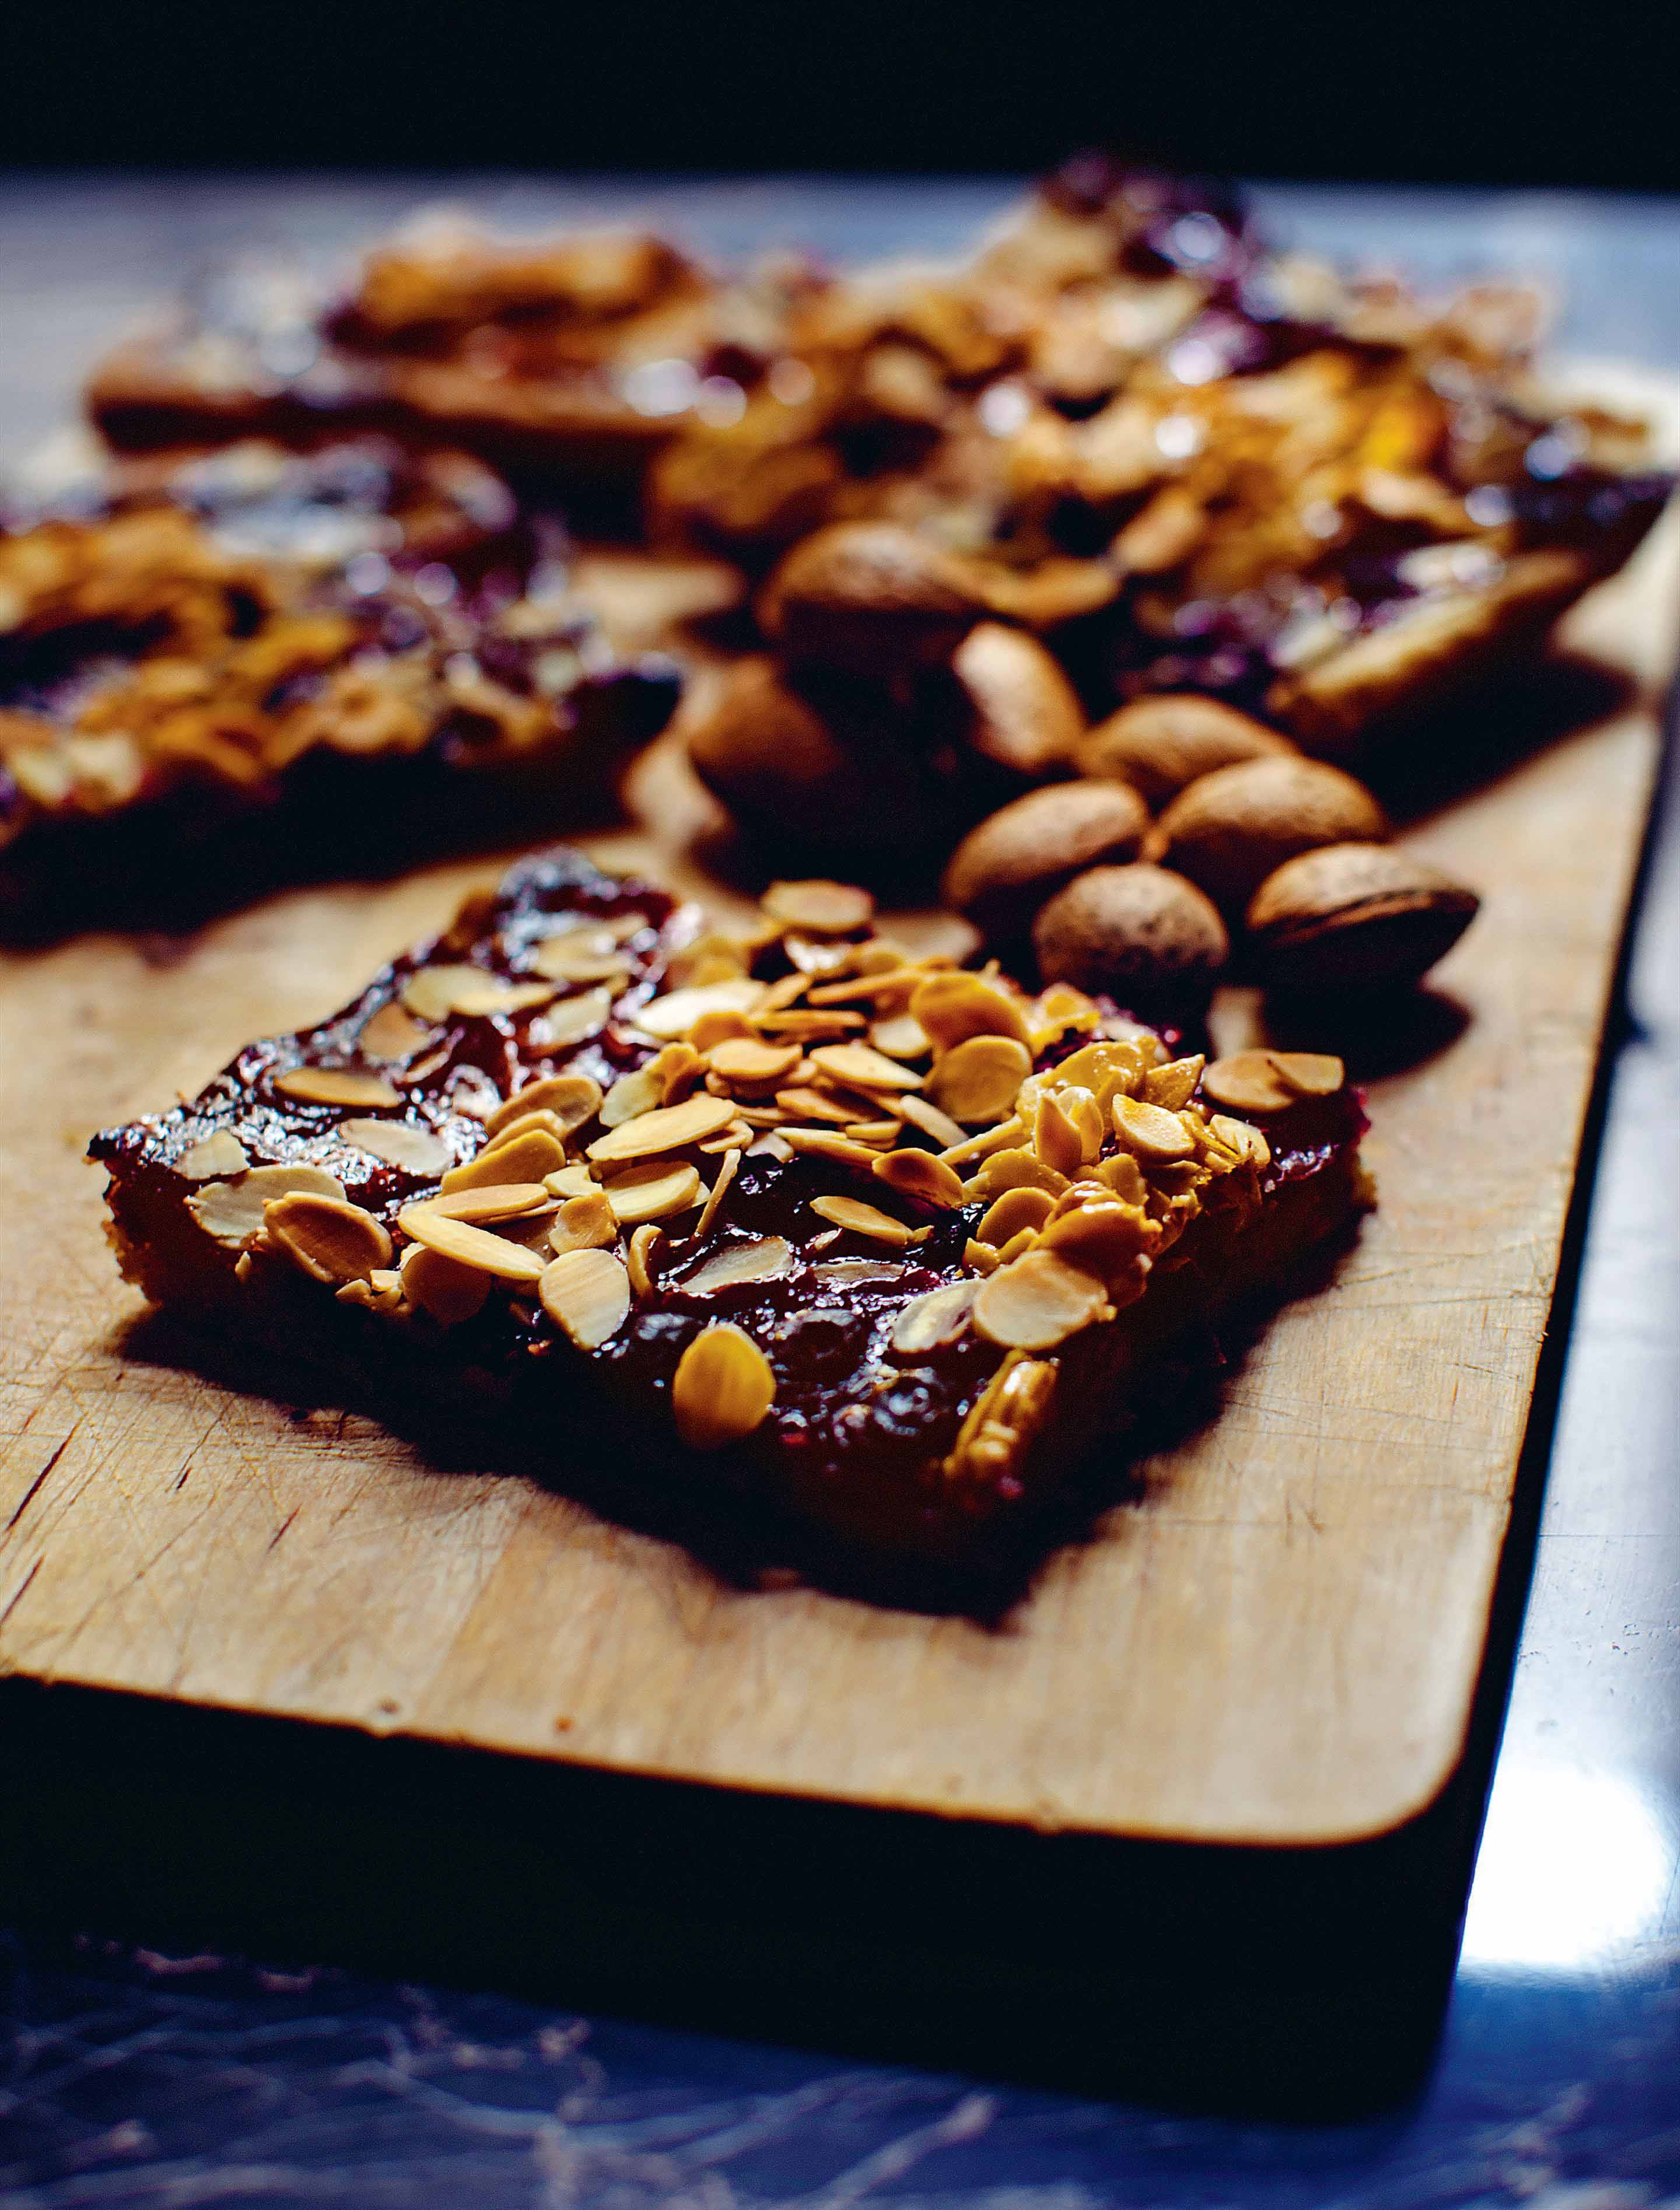 Blackberry and almond slices